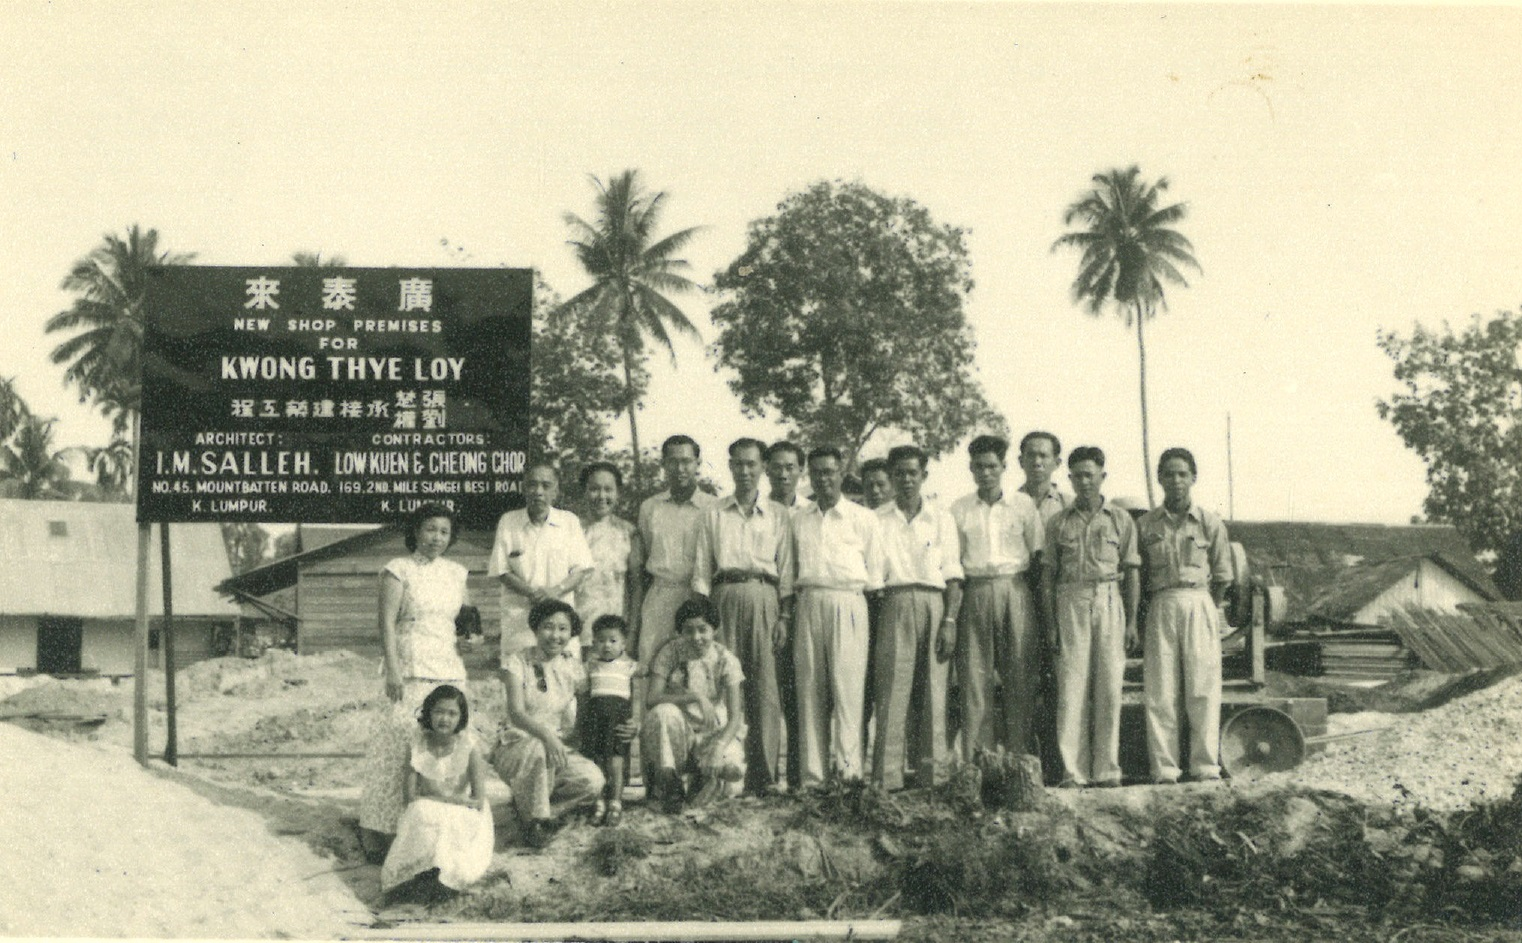 1954: New shop premises for Kwong Thye Loy